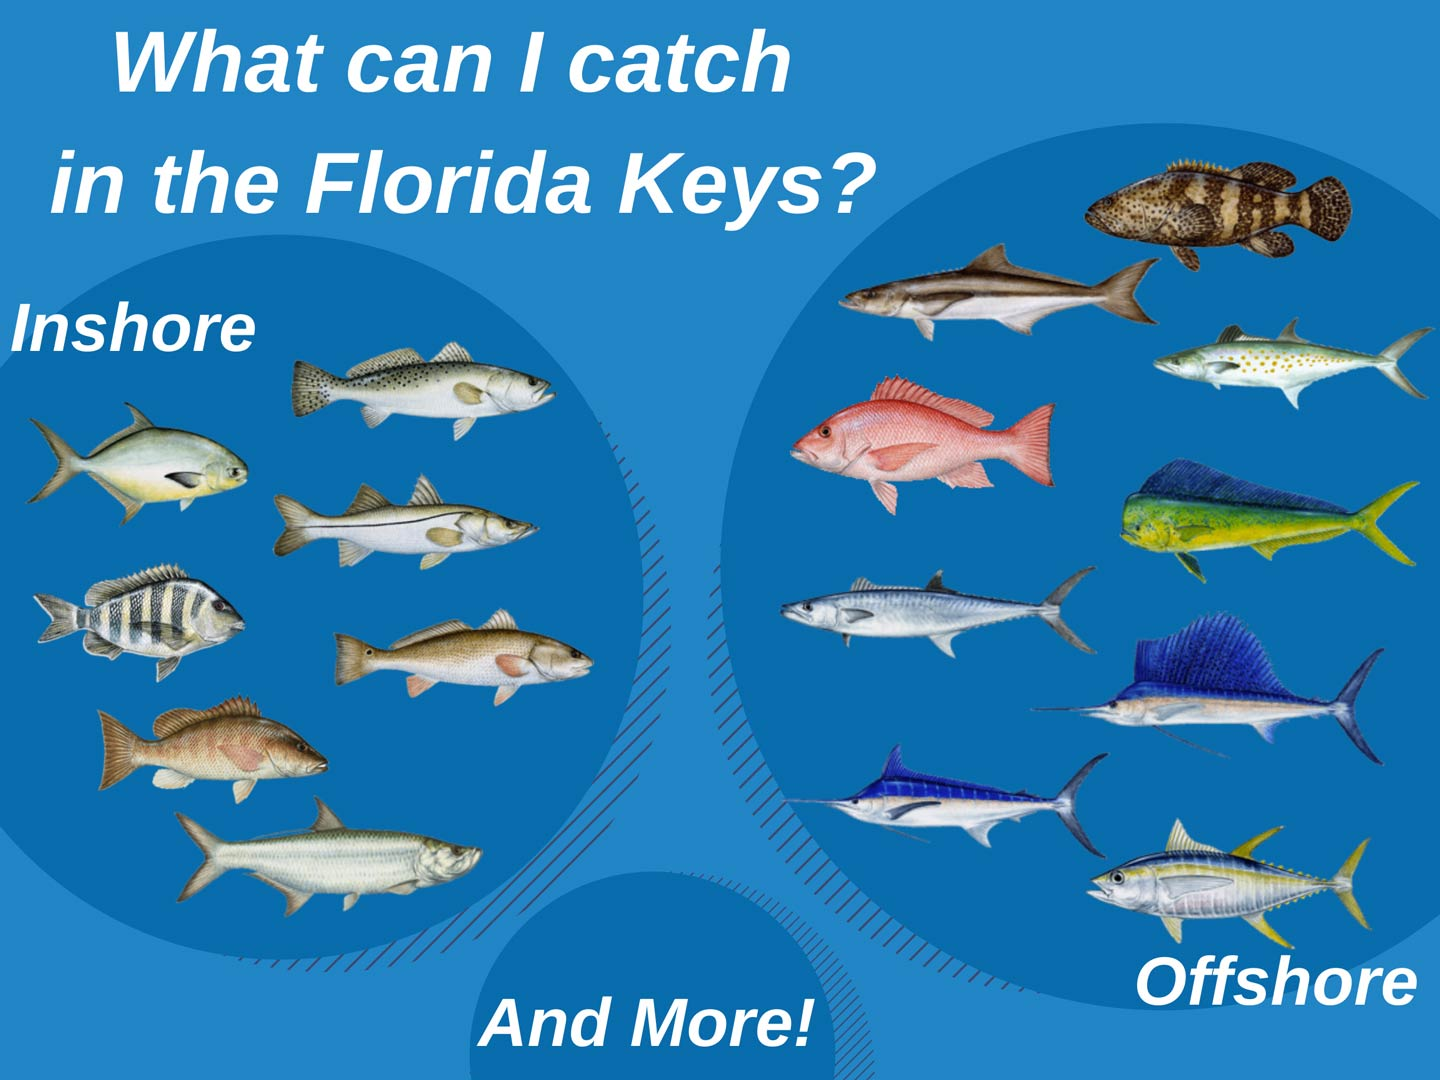 An infographic showing the top fish species to target in the Florida Keys both inshore and offshore